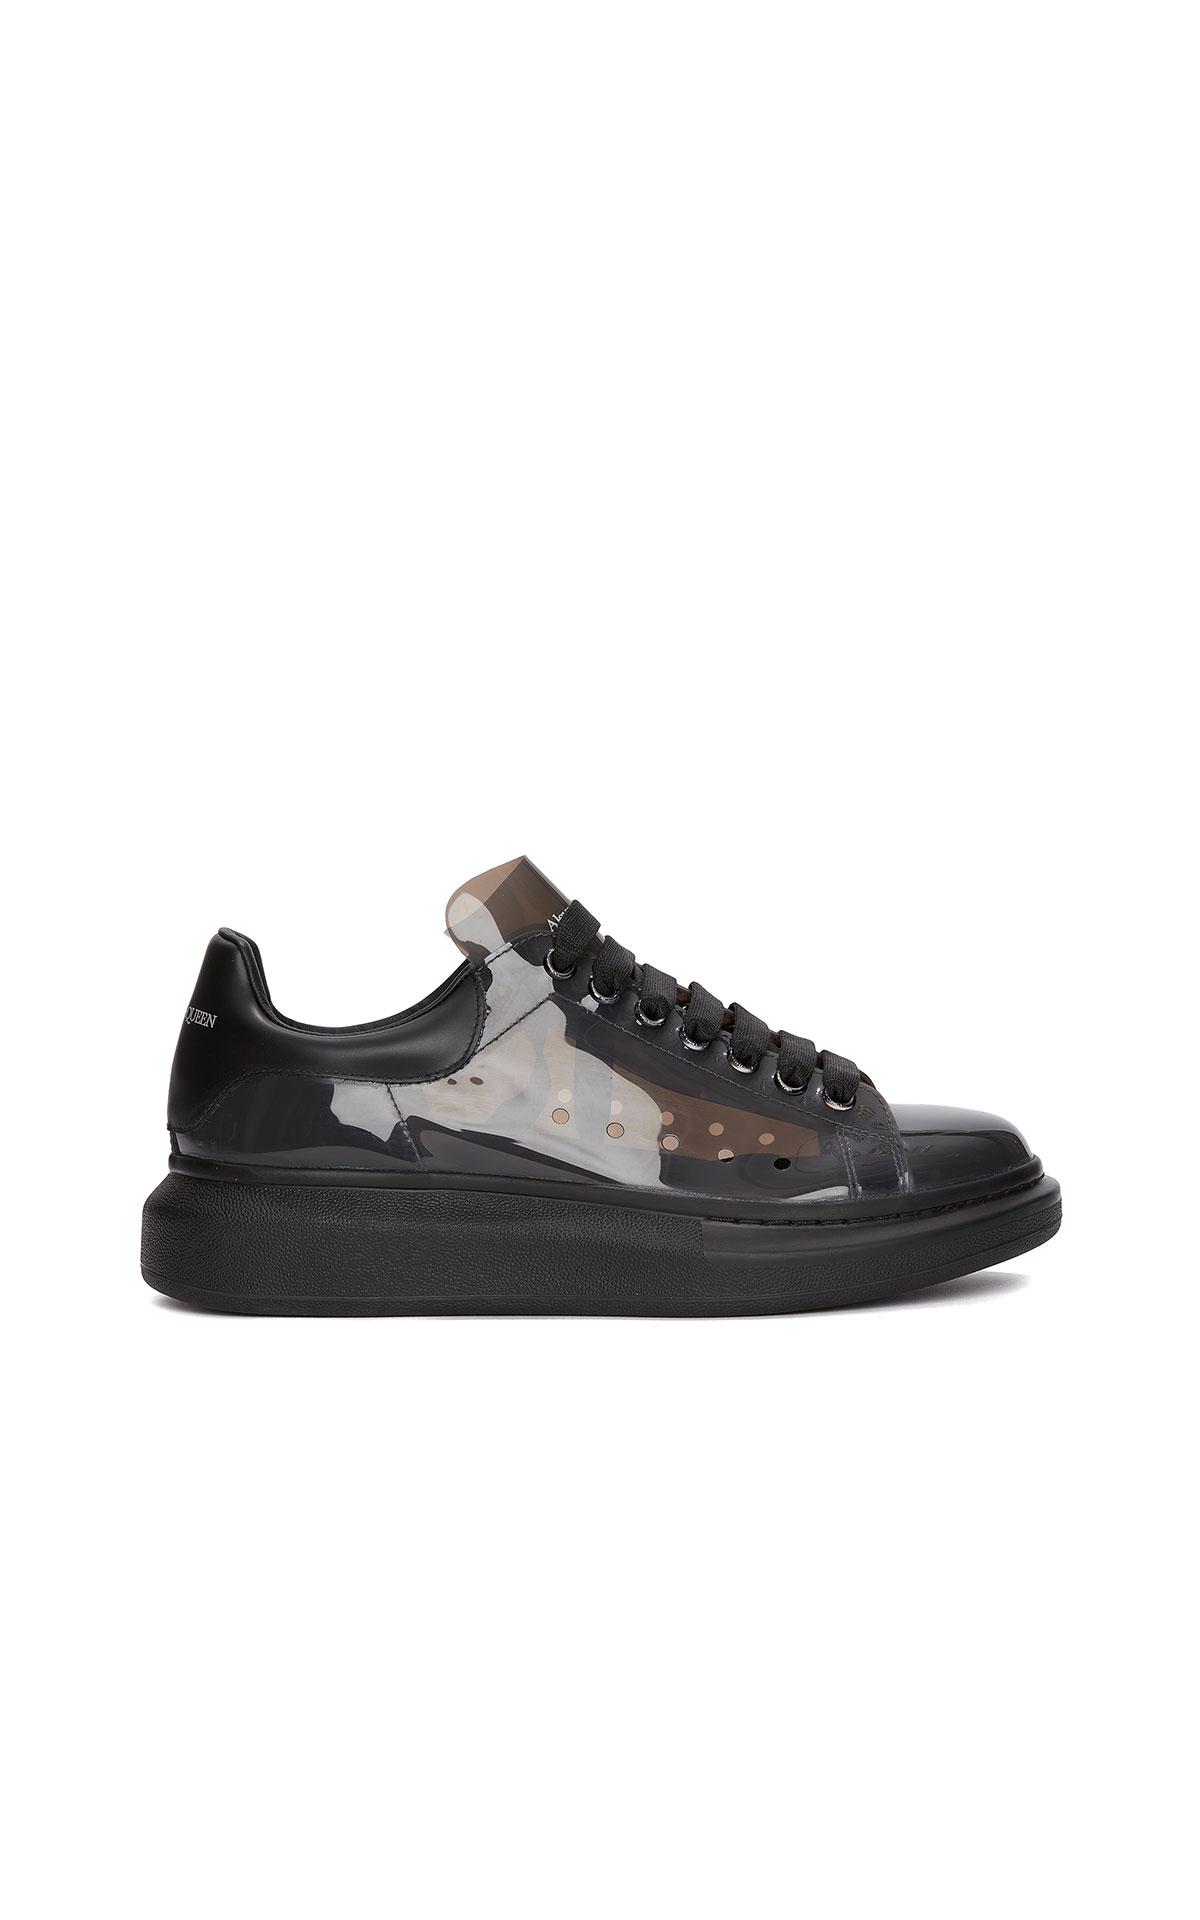 Alexander McQueen Men's sneaker from Bicester Village